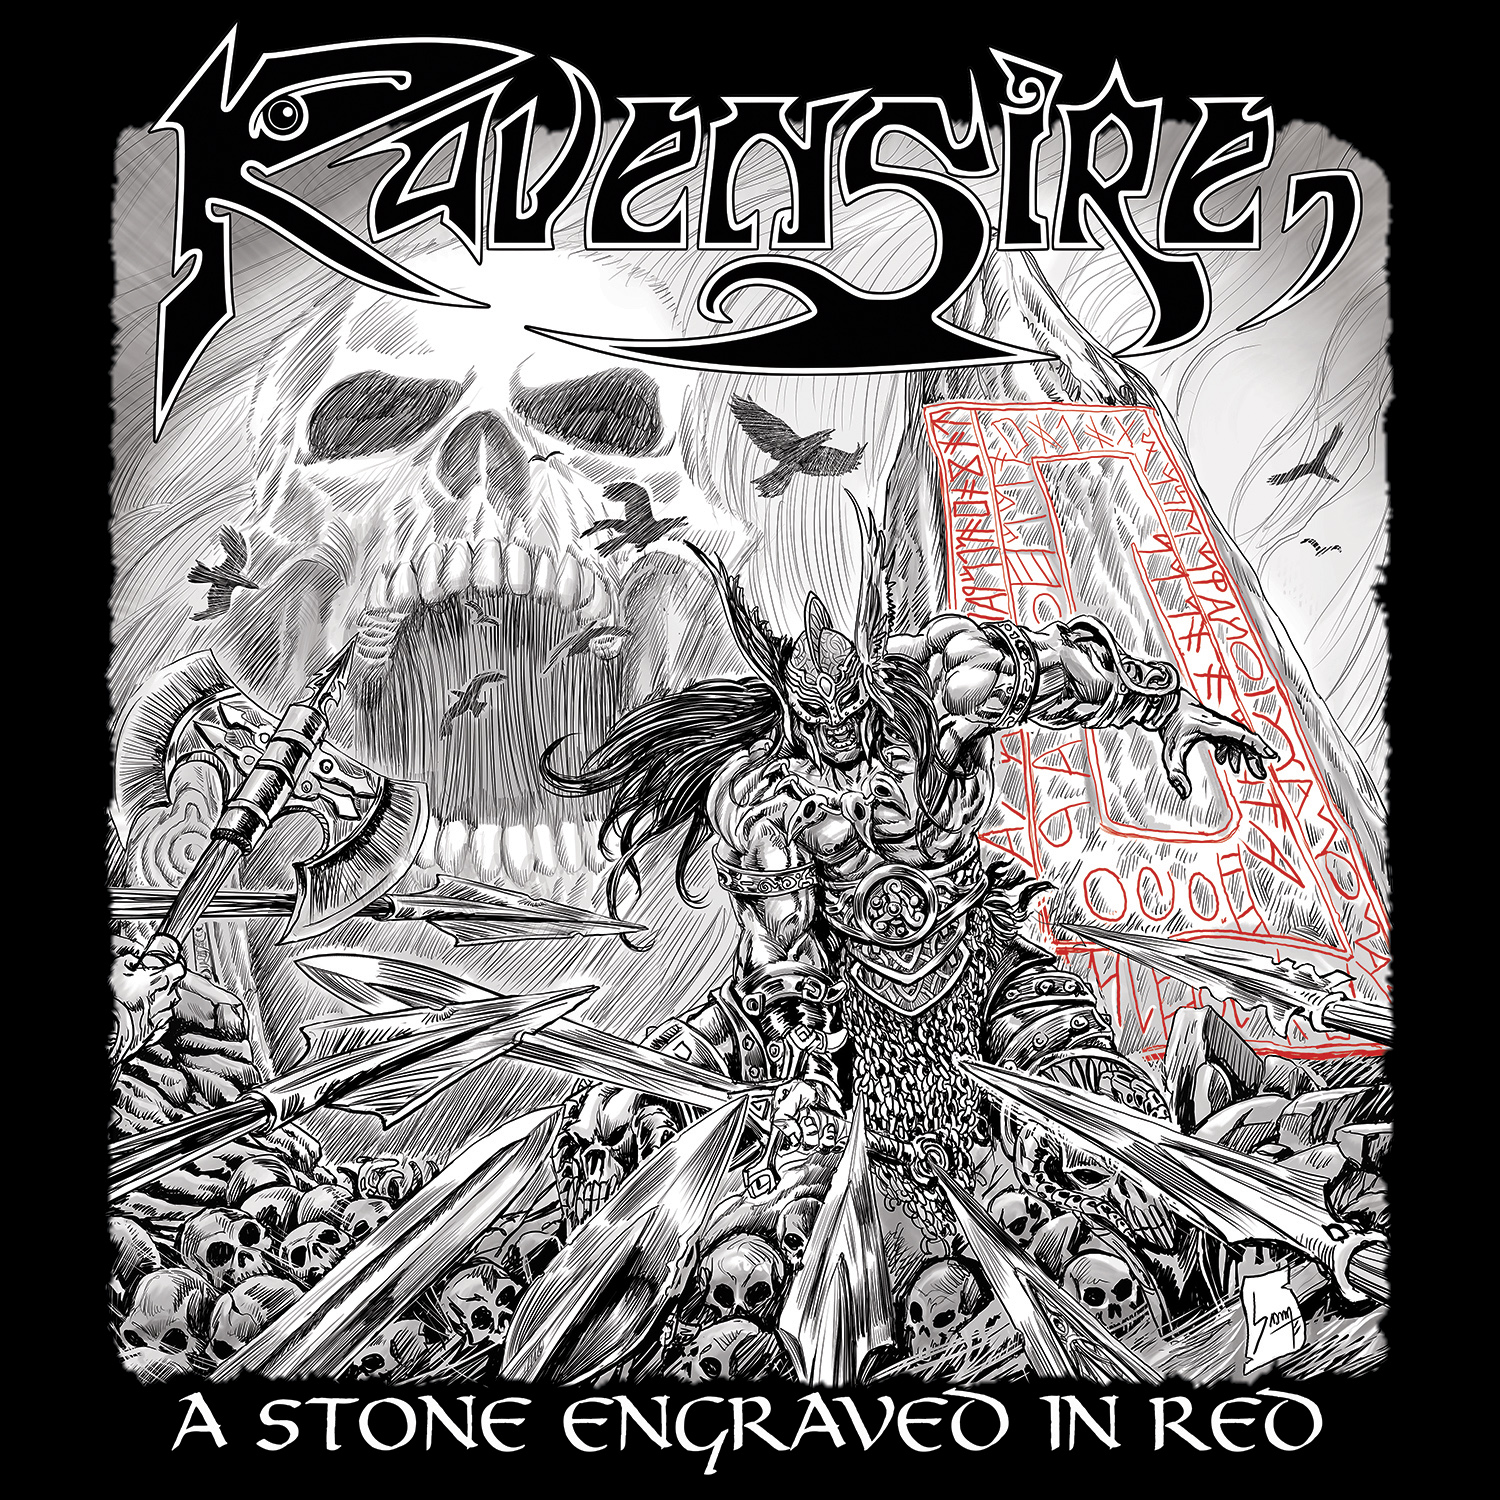 ravenshire-a-stone-engraved-in-red-wie-guter-wein-album-review